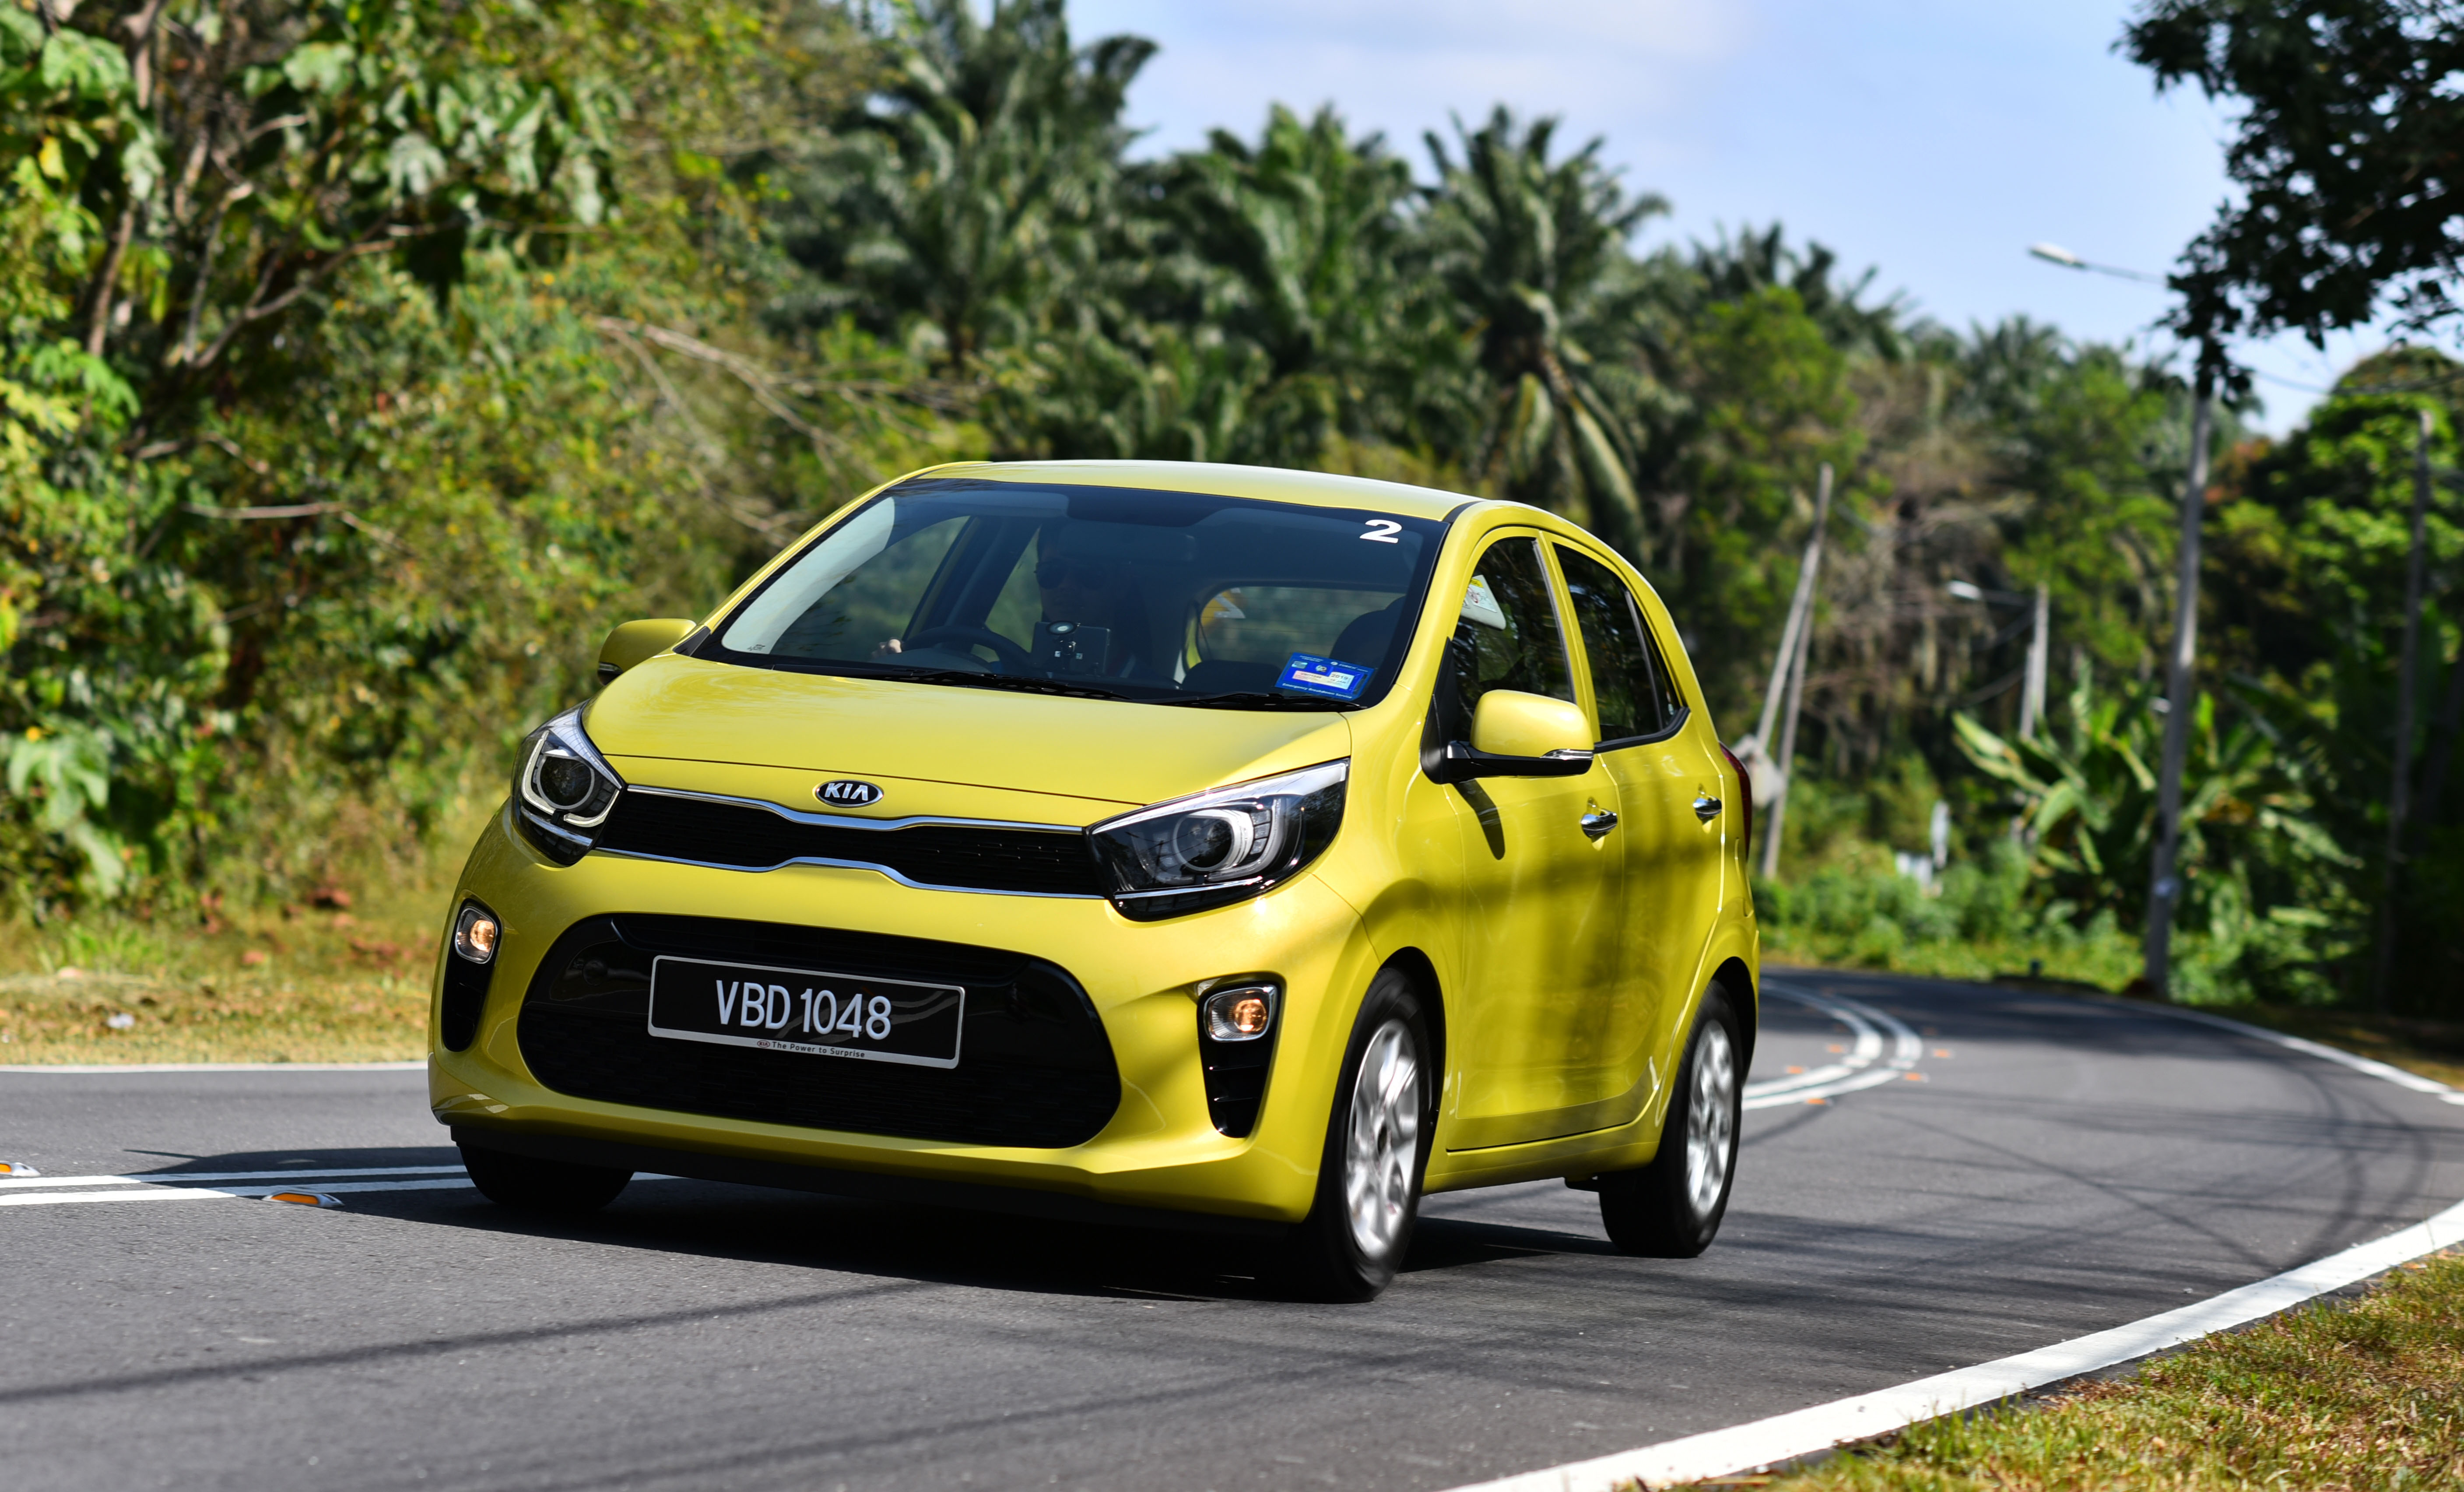 reviewed: kia picanto 1.2 – why it's the best value car out there